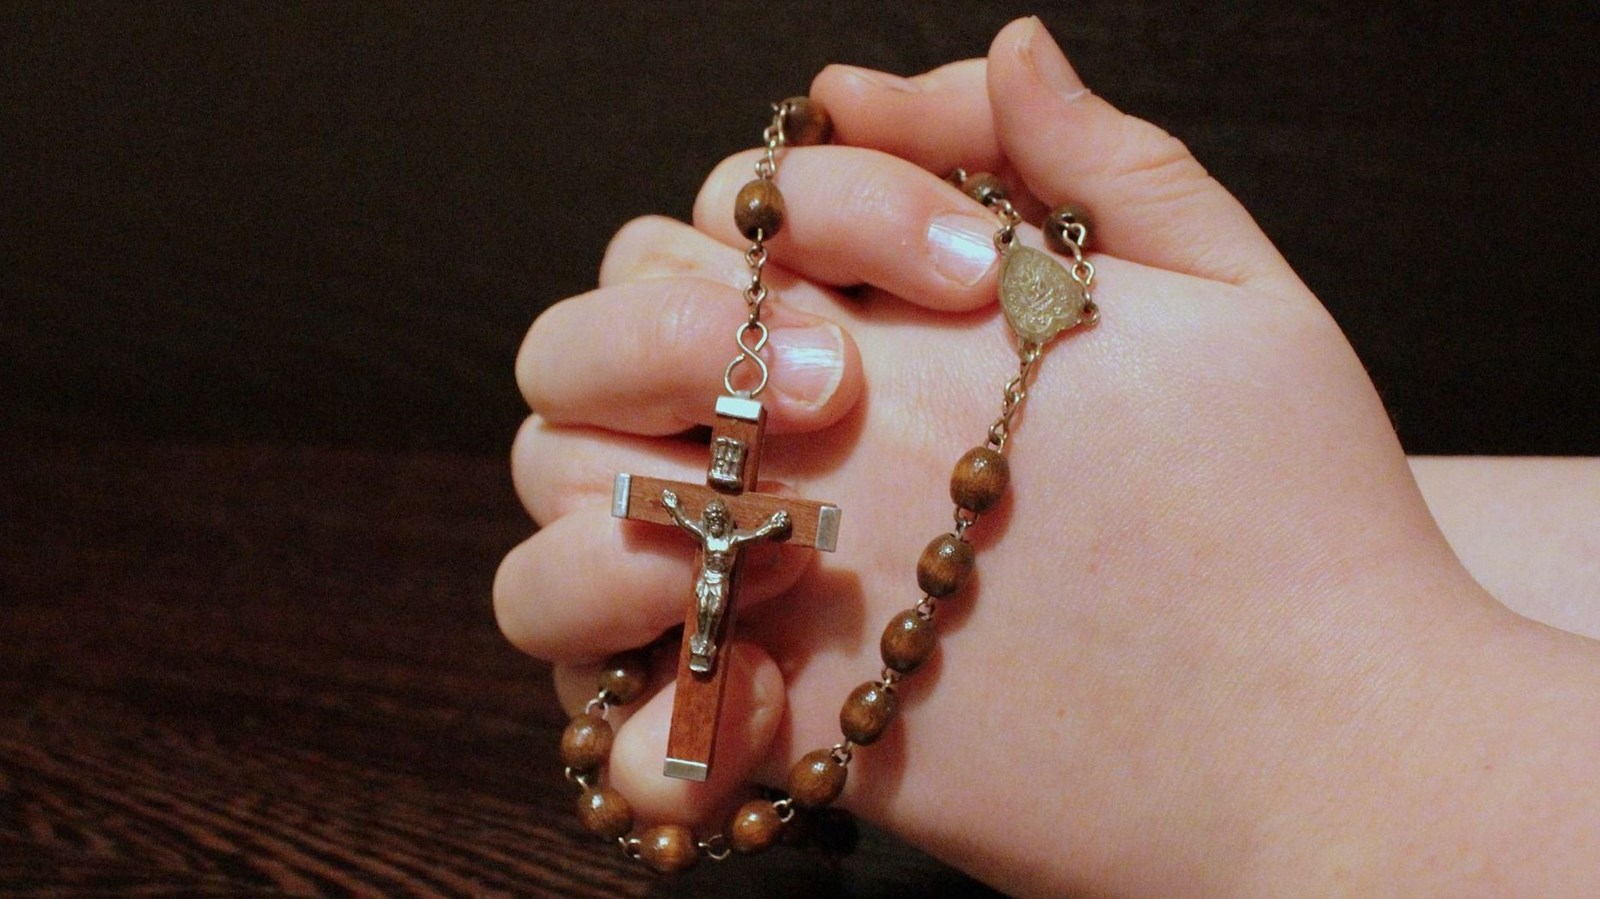 Rosary in child's hand